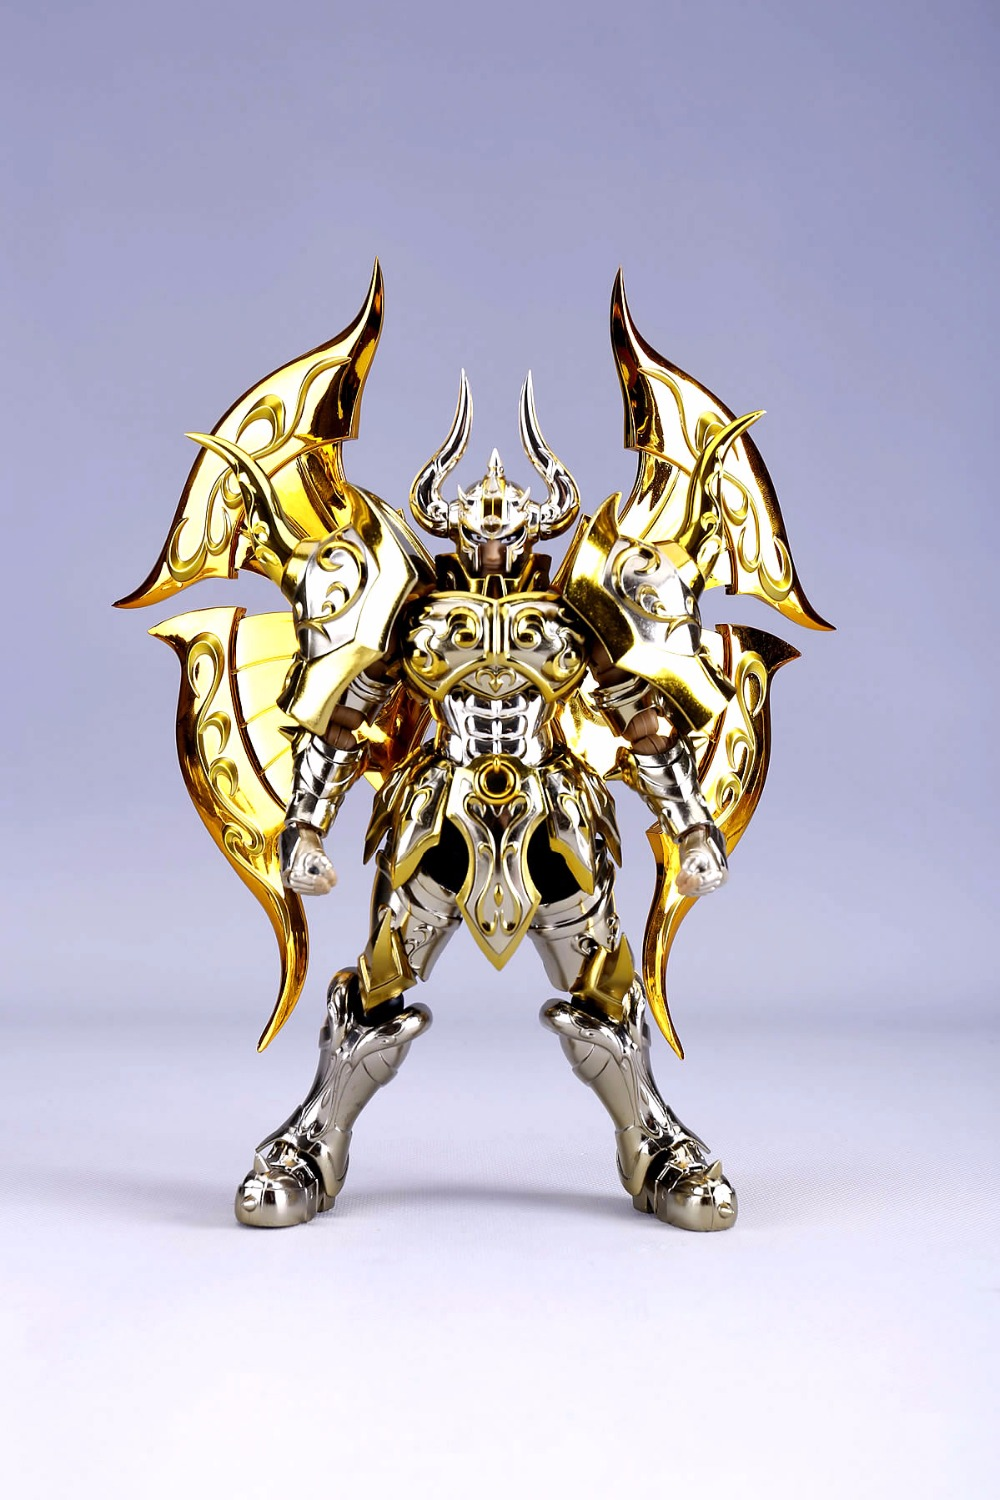 in stock Aldebaran Taurus soul of gold SOG Divine armor Saint Seiya Myth Cloth EX metal toy PayPal Payment new arrival s temple model st taurus aldebaran saint seiya metal armor myth cloth gold ex action figure toy